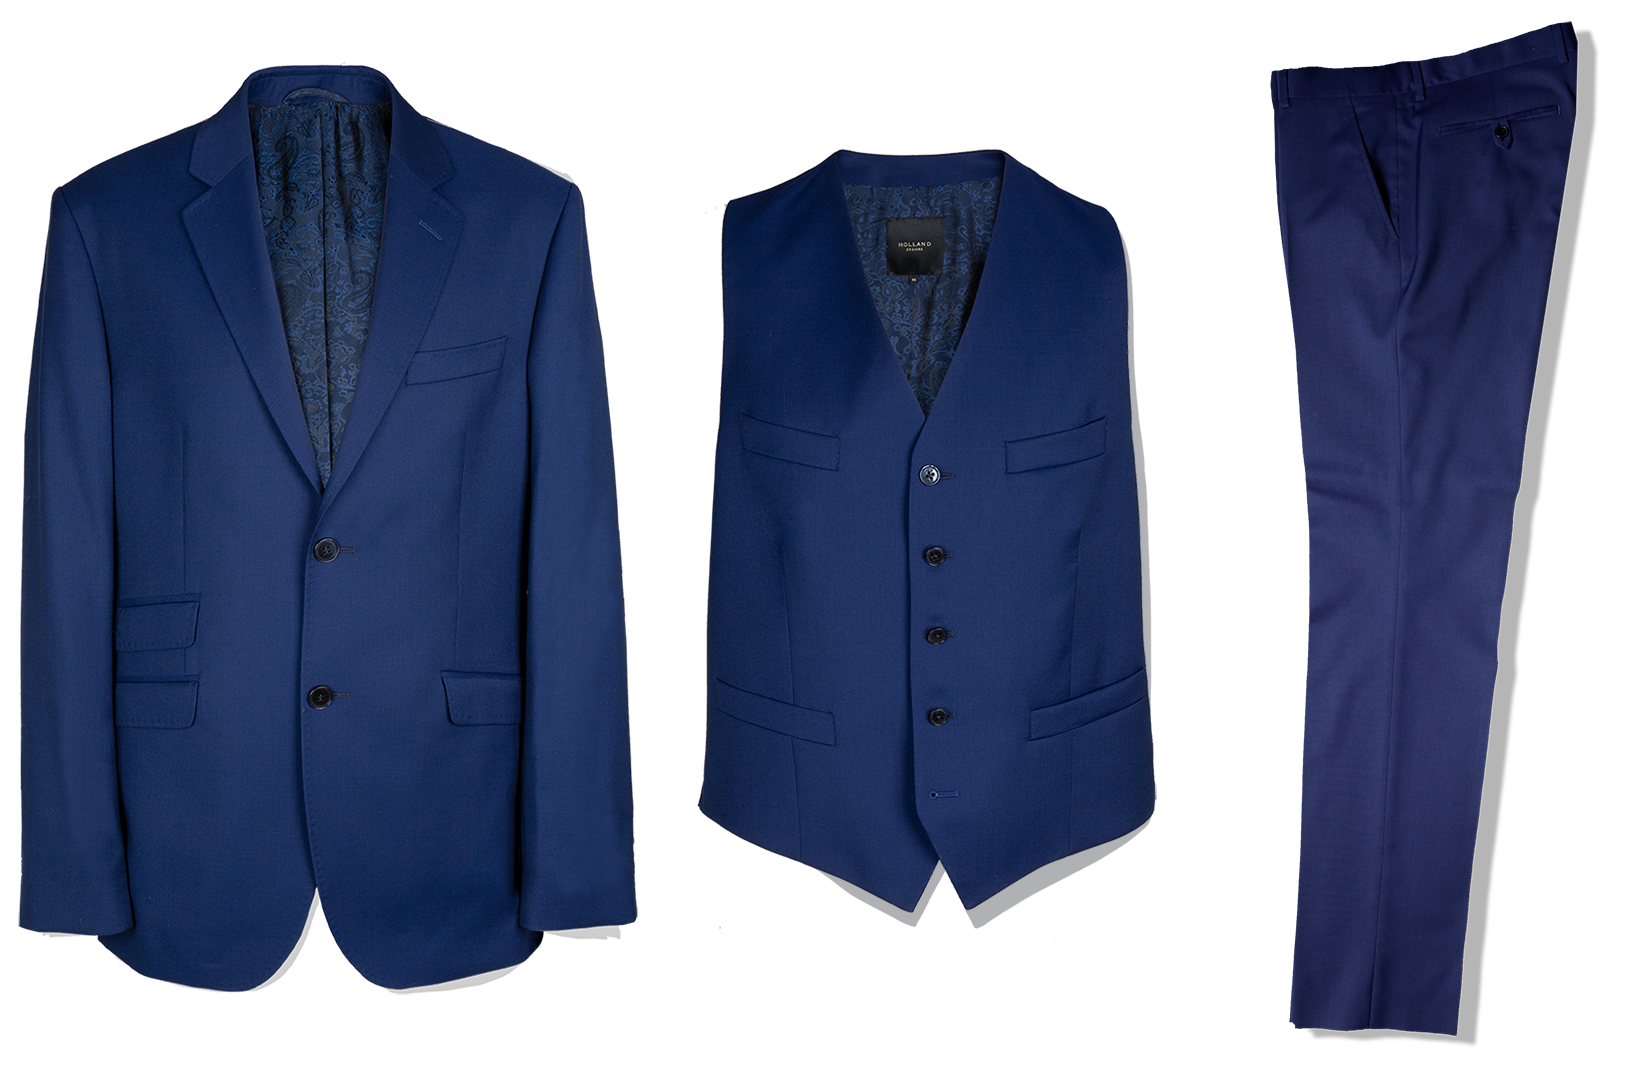 3 Piece Suit in Royal Panama - Holland Esquire